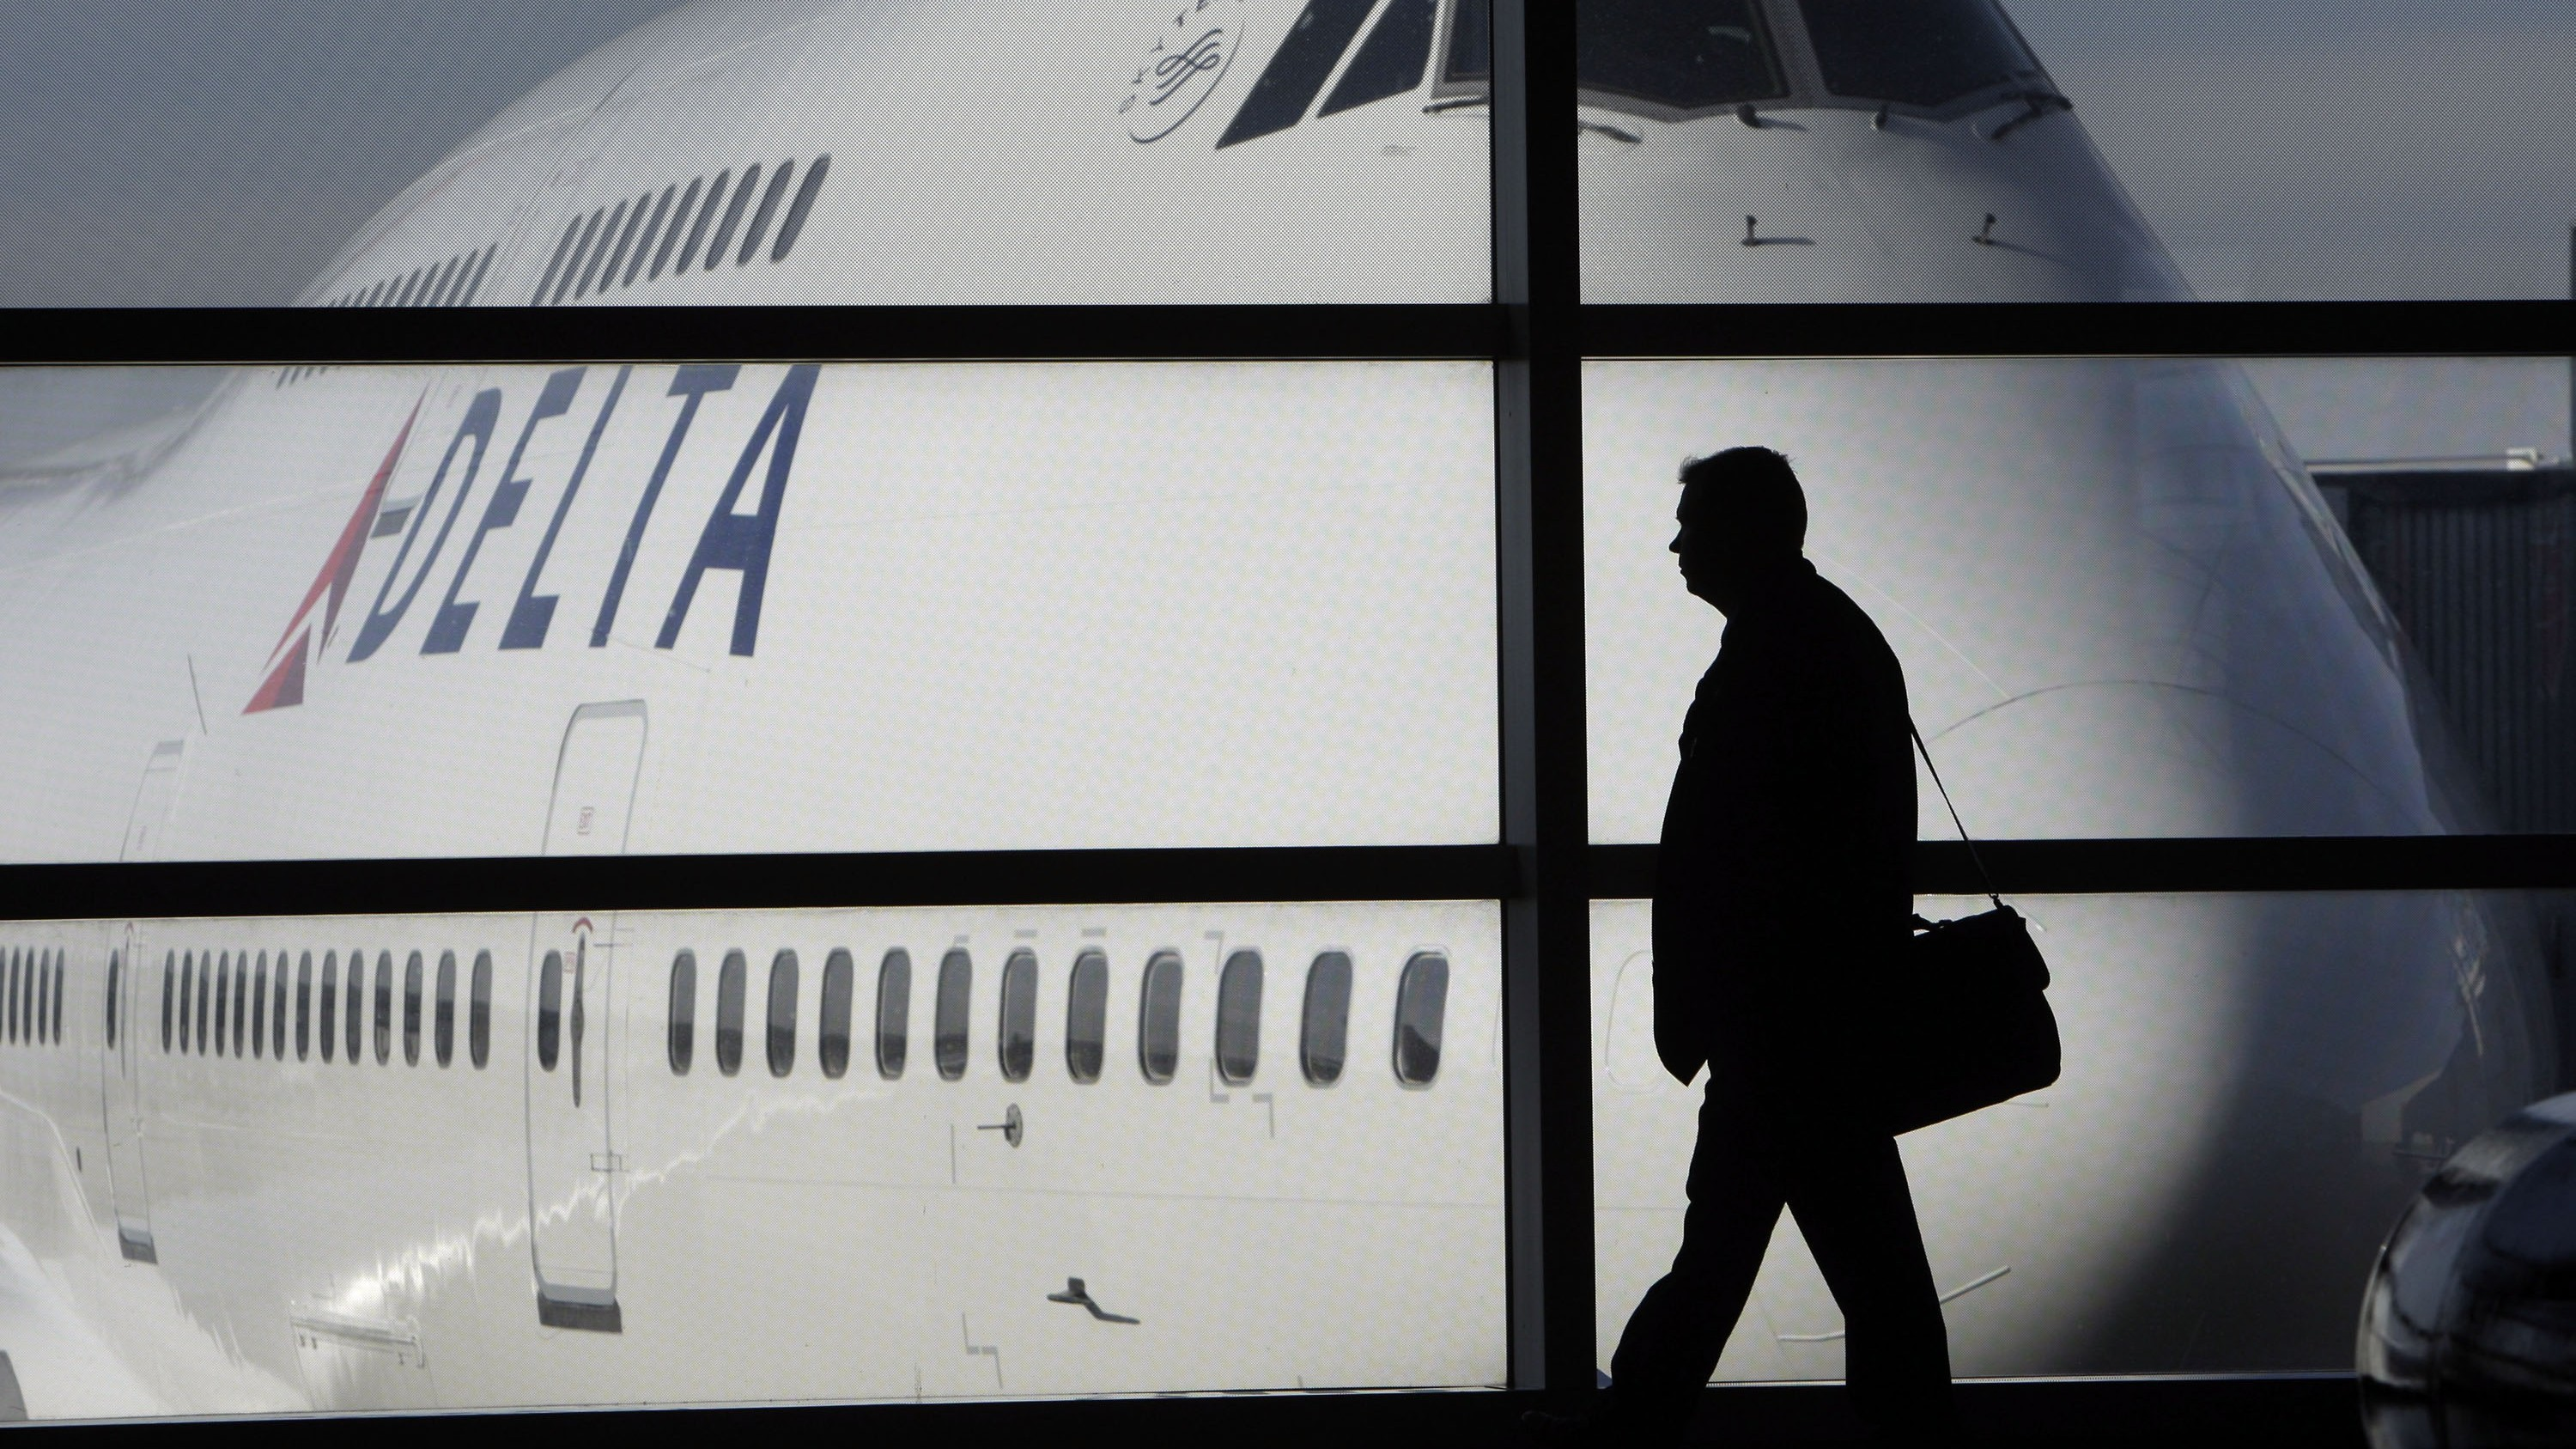 A passenger walks past a Delta Airlines 747 aircraft in McNamara Terminal at Detroit Metropolitan Wayne County Airport in Romulus, Mich.